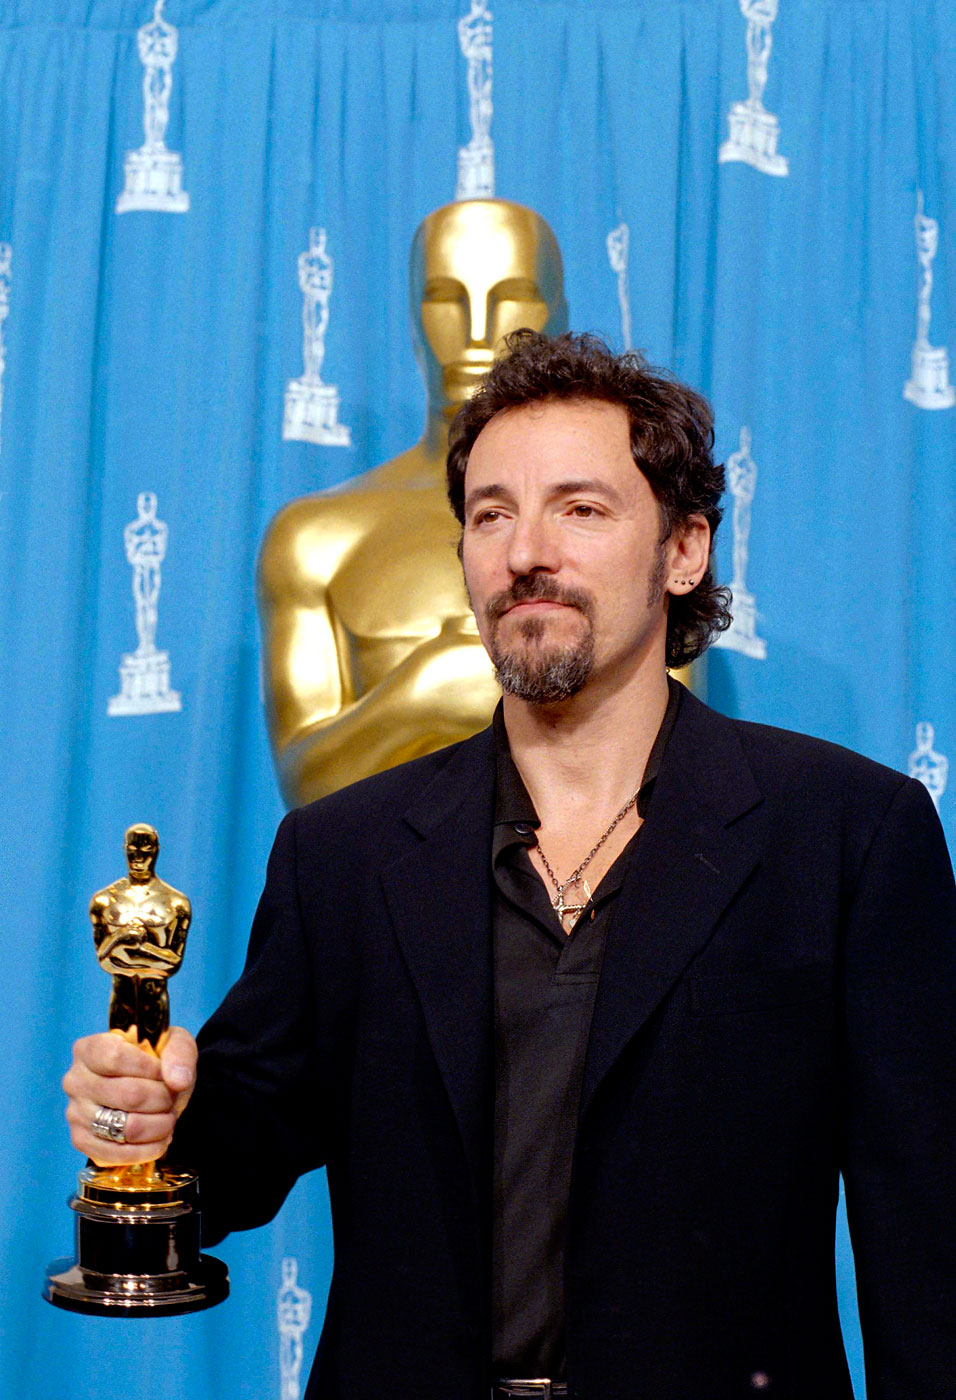 """1994:                                Springsteen won an Oscar for Best Song for the track,  Streets of Philadelphia  from the movie Philadelphia, beating out Neil Young's """"Philadelphia,"""" which was also written for the movie. With this win, the Boss is halfway to an EGOT."""